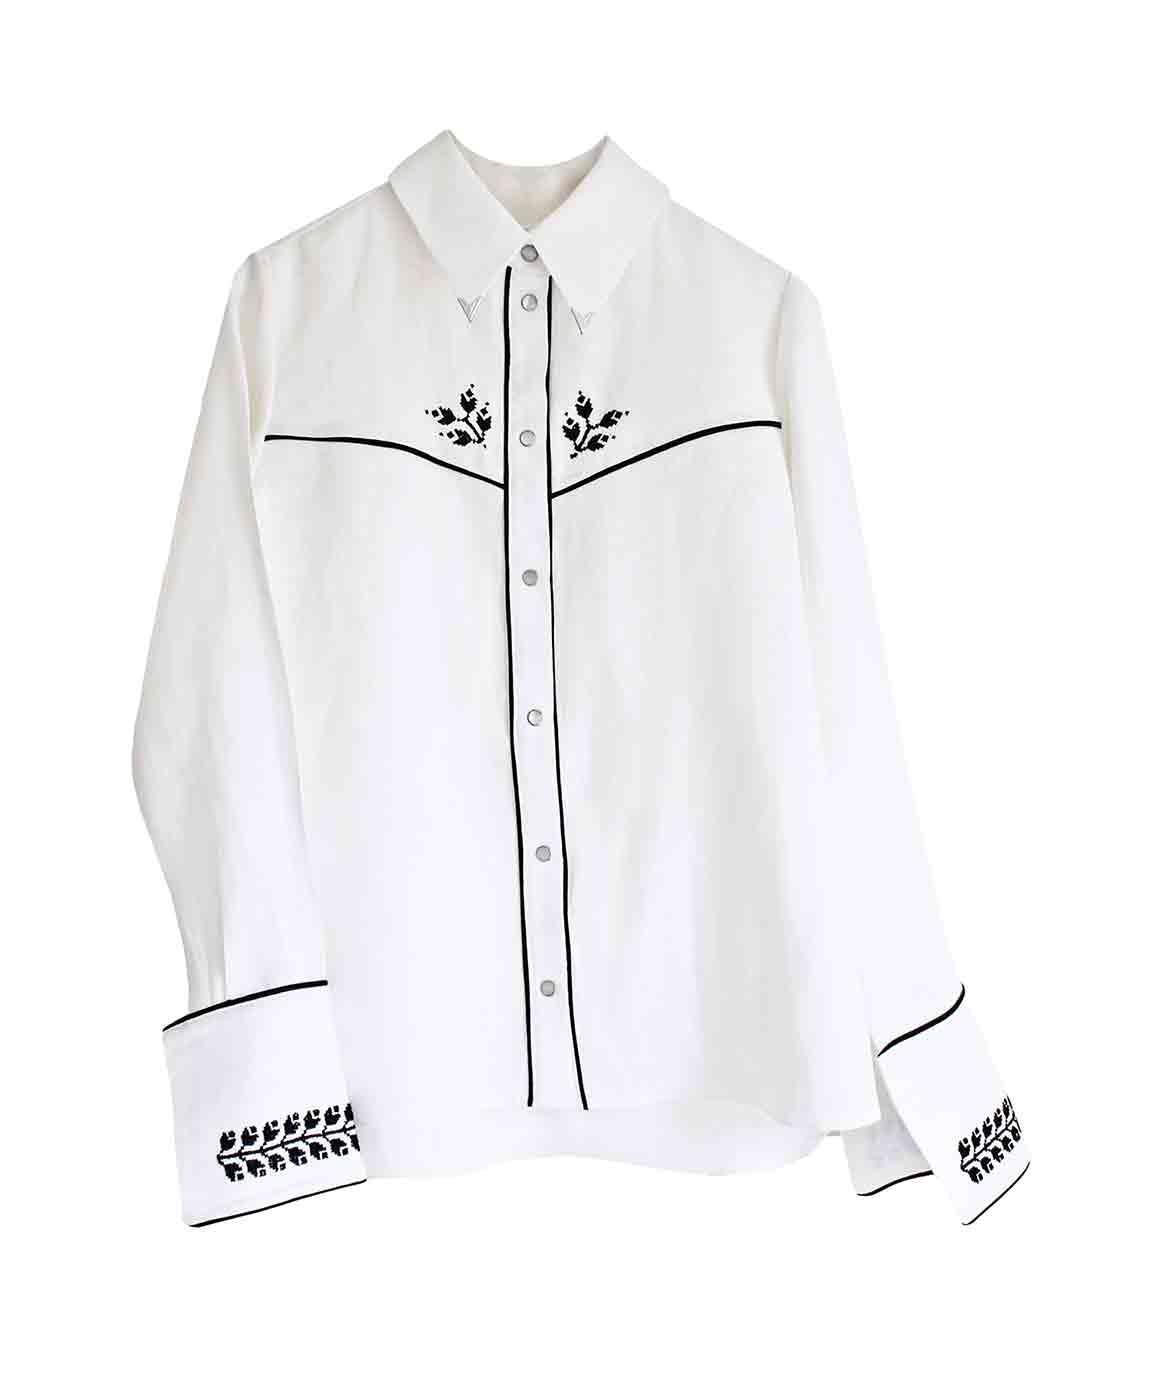 White Embroidered Cowboy Shirt